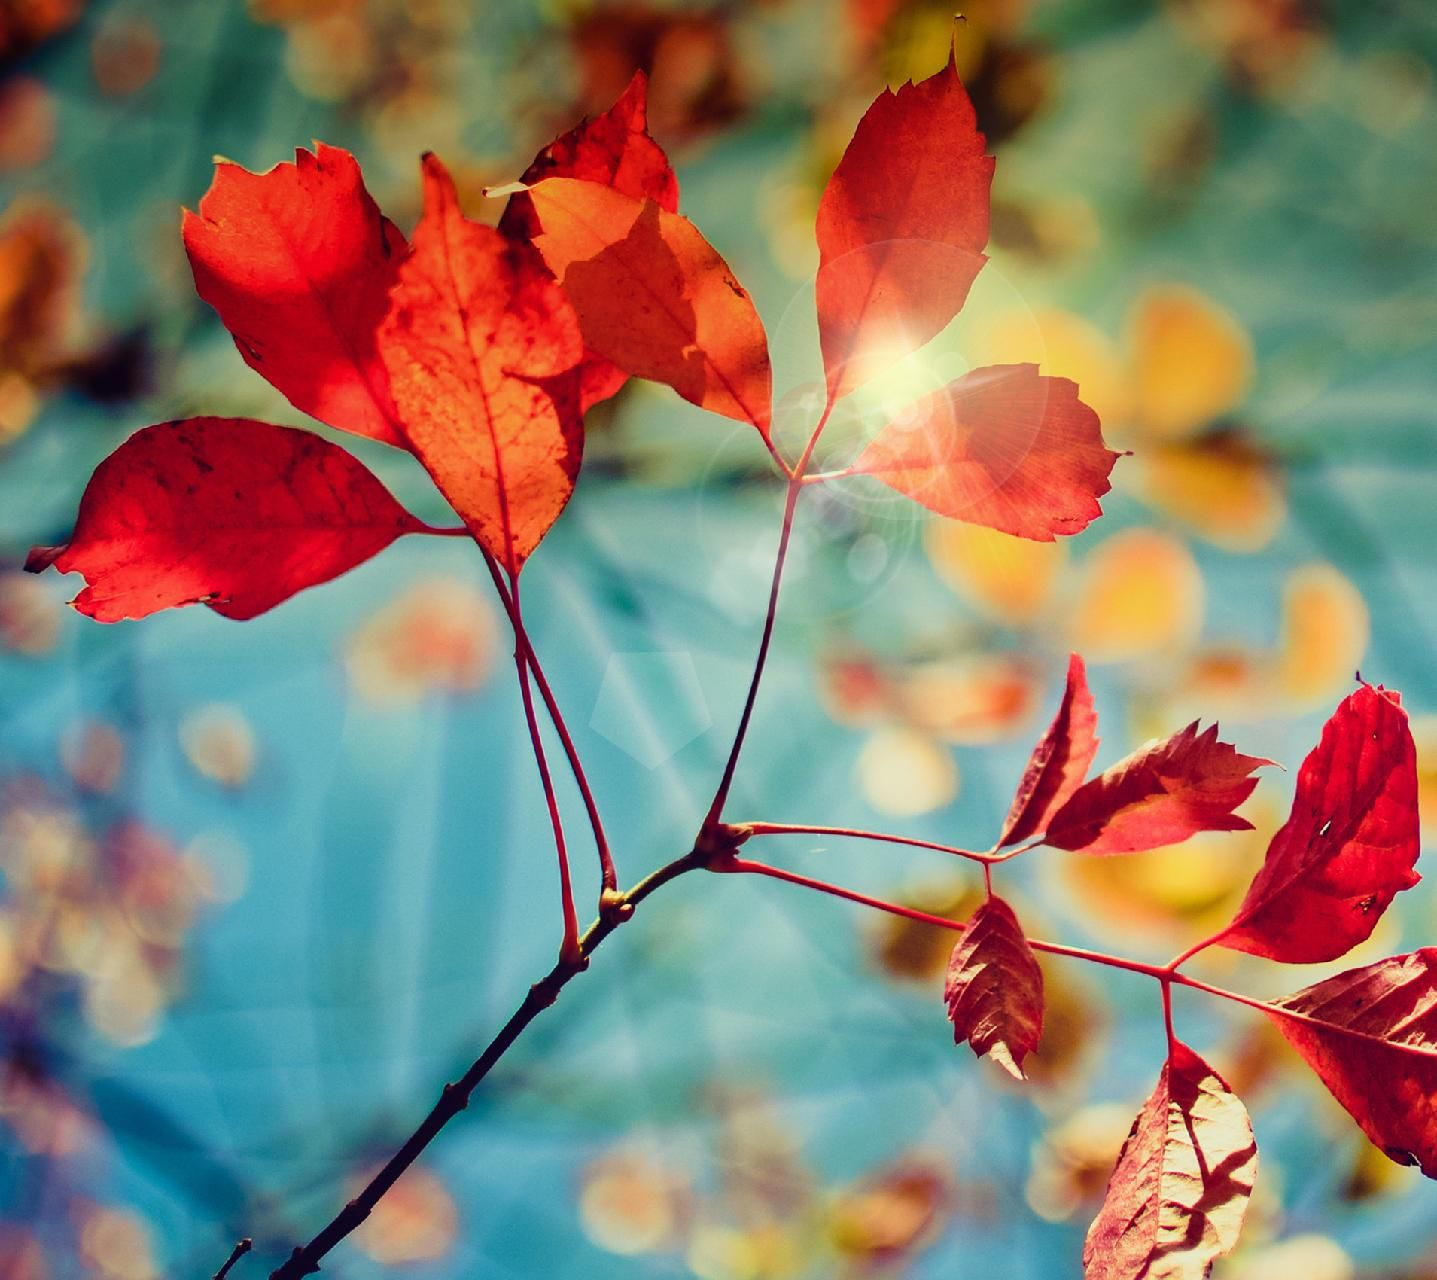 Download Samsung Galaxy S4 Wallpaper By Ong76win2 92 Free On Zedge Now Browse Millions Of Popular Samsungga Stock Wallpaper Live Wallpapers Autumn Leaves